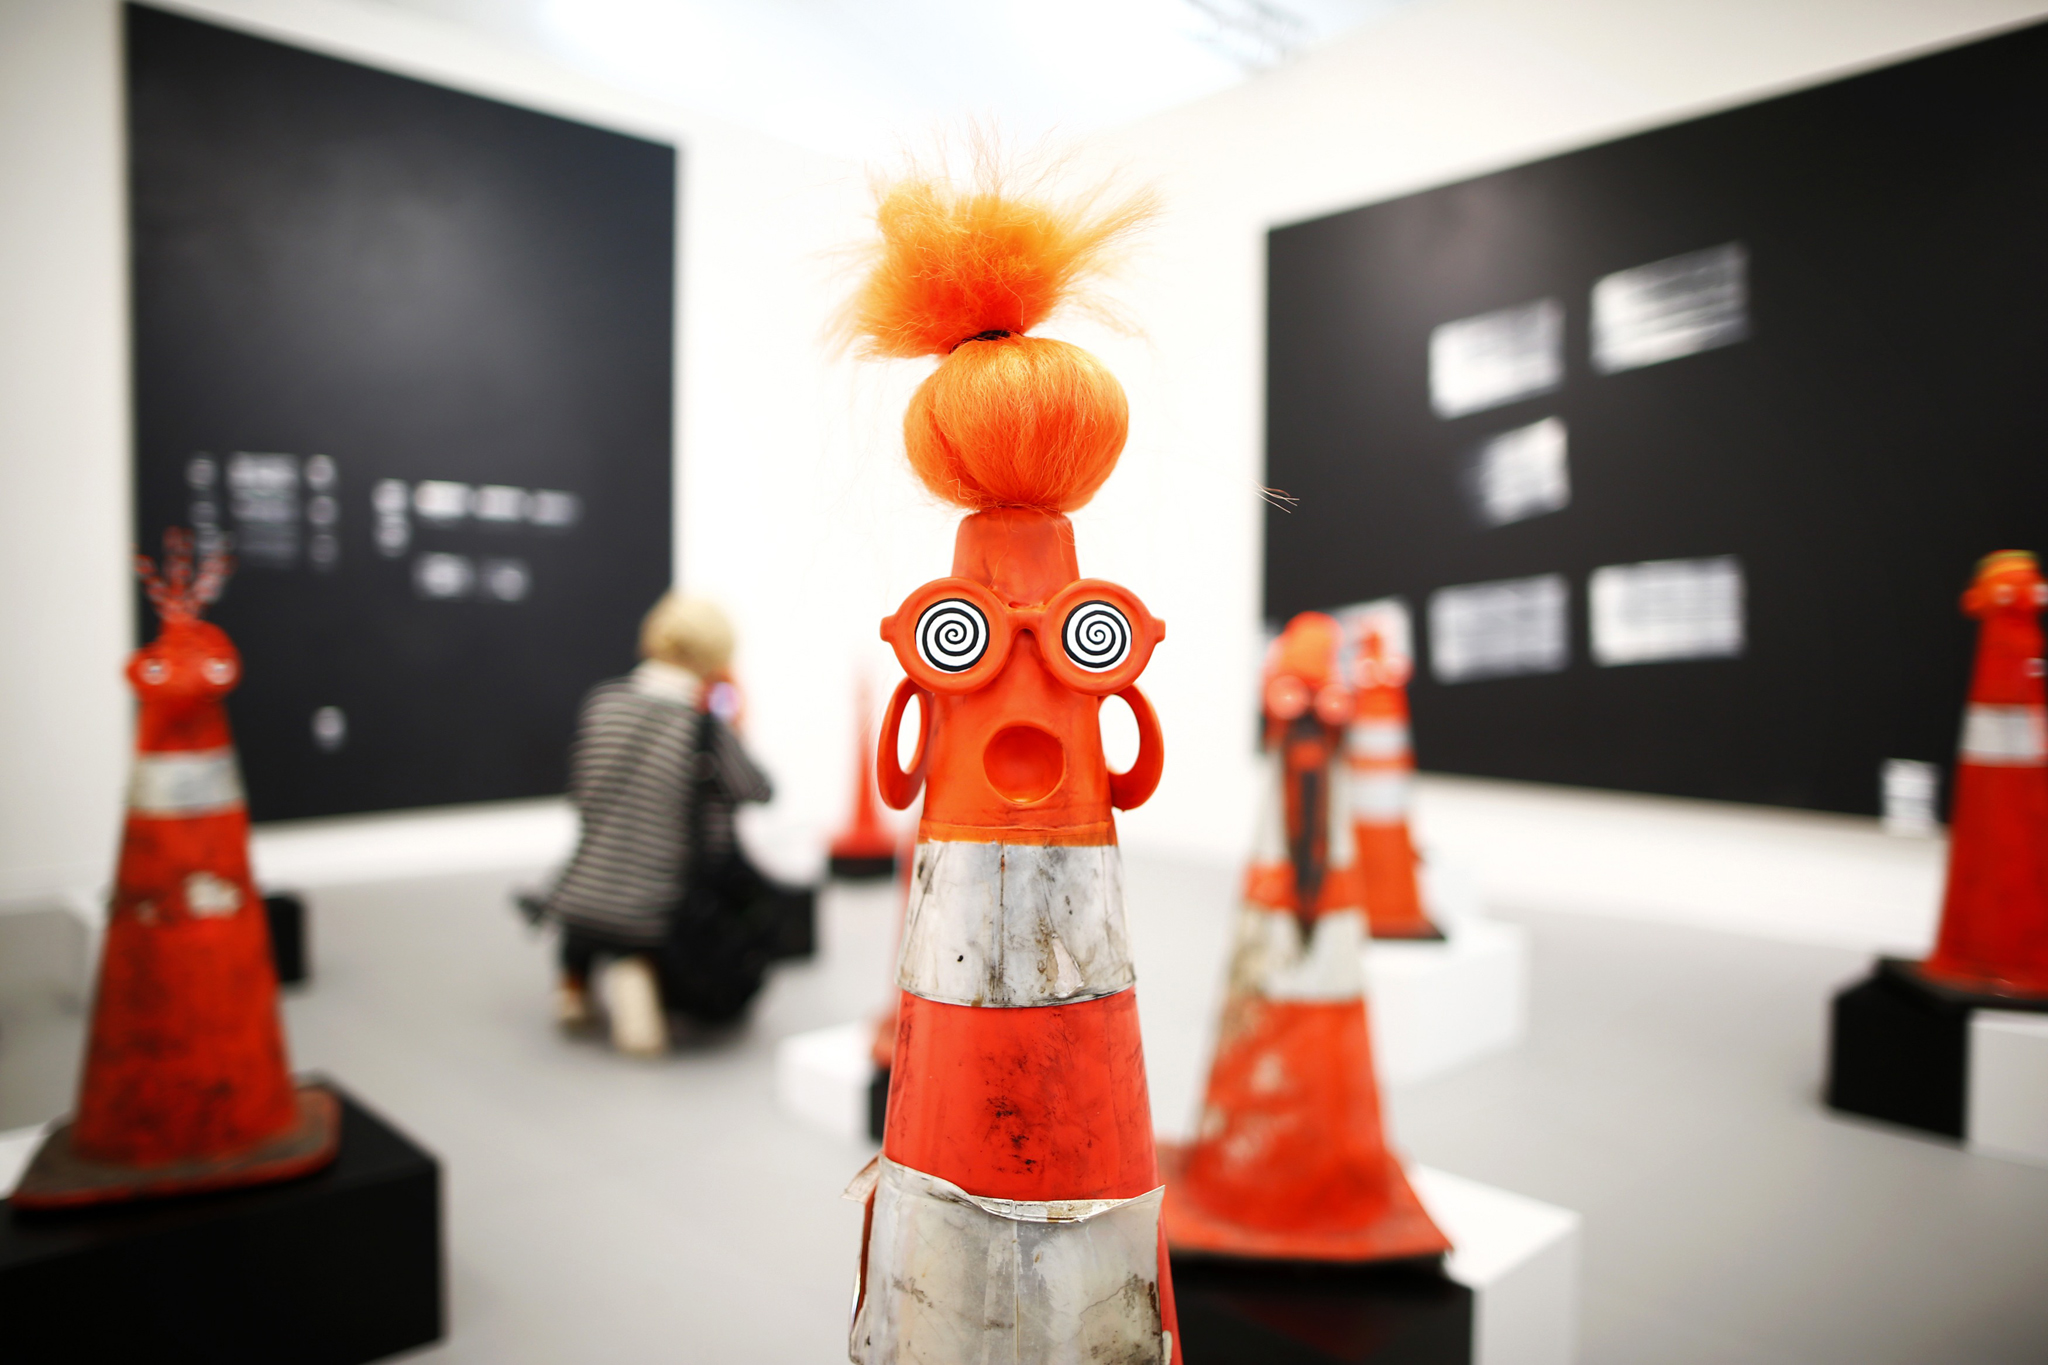 """A visitor photographs part of Robert Pruitt's """"Safety Cones"""" at the Frieze Art Fair in central London...A visitor photographs part of Robert Pruitt's """"Safety Cones"""" at the Gavin Brown's Enterprise from New York's stand at the Frieze Art Fair in central London, October 16, 2013. REUTERS/Andrew Winning"""